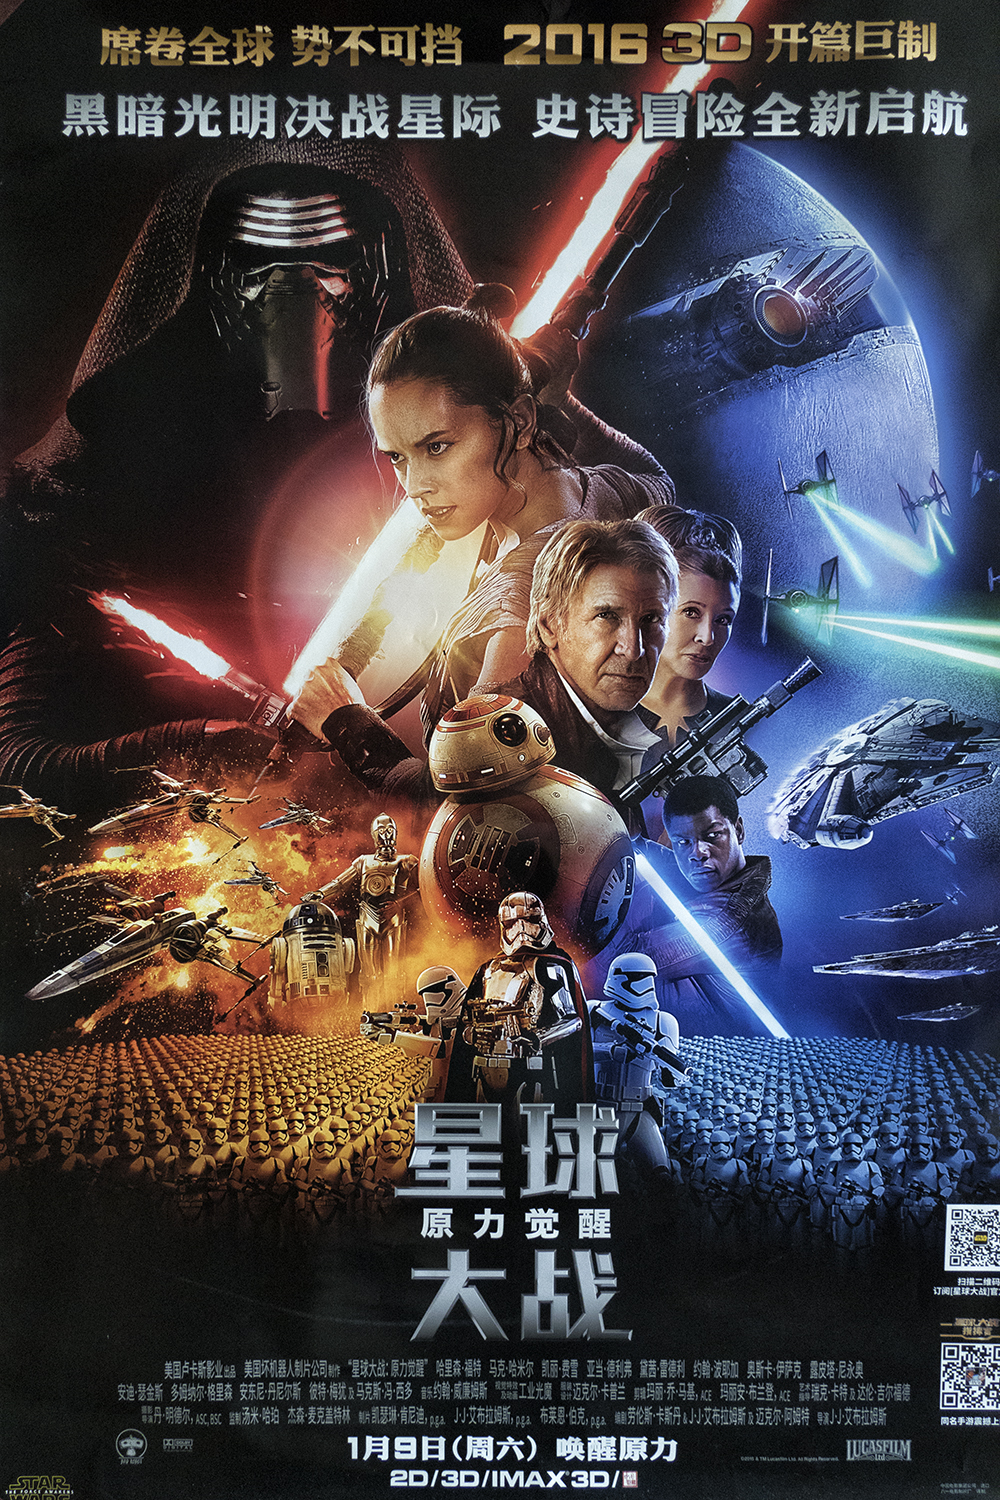 Star Wars, in China